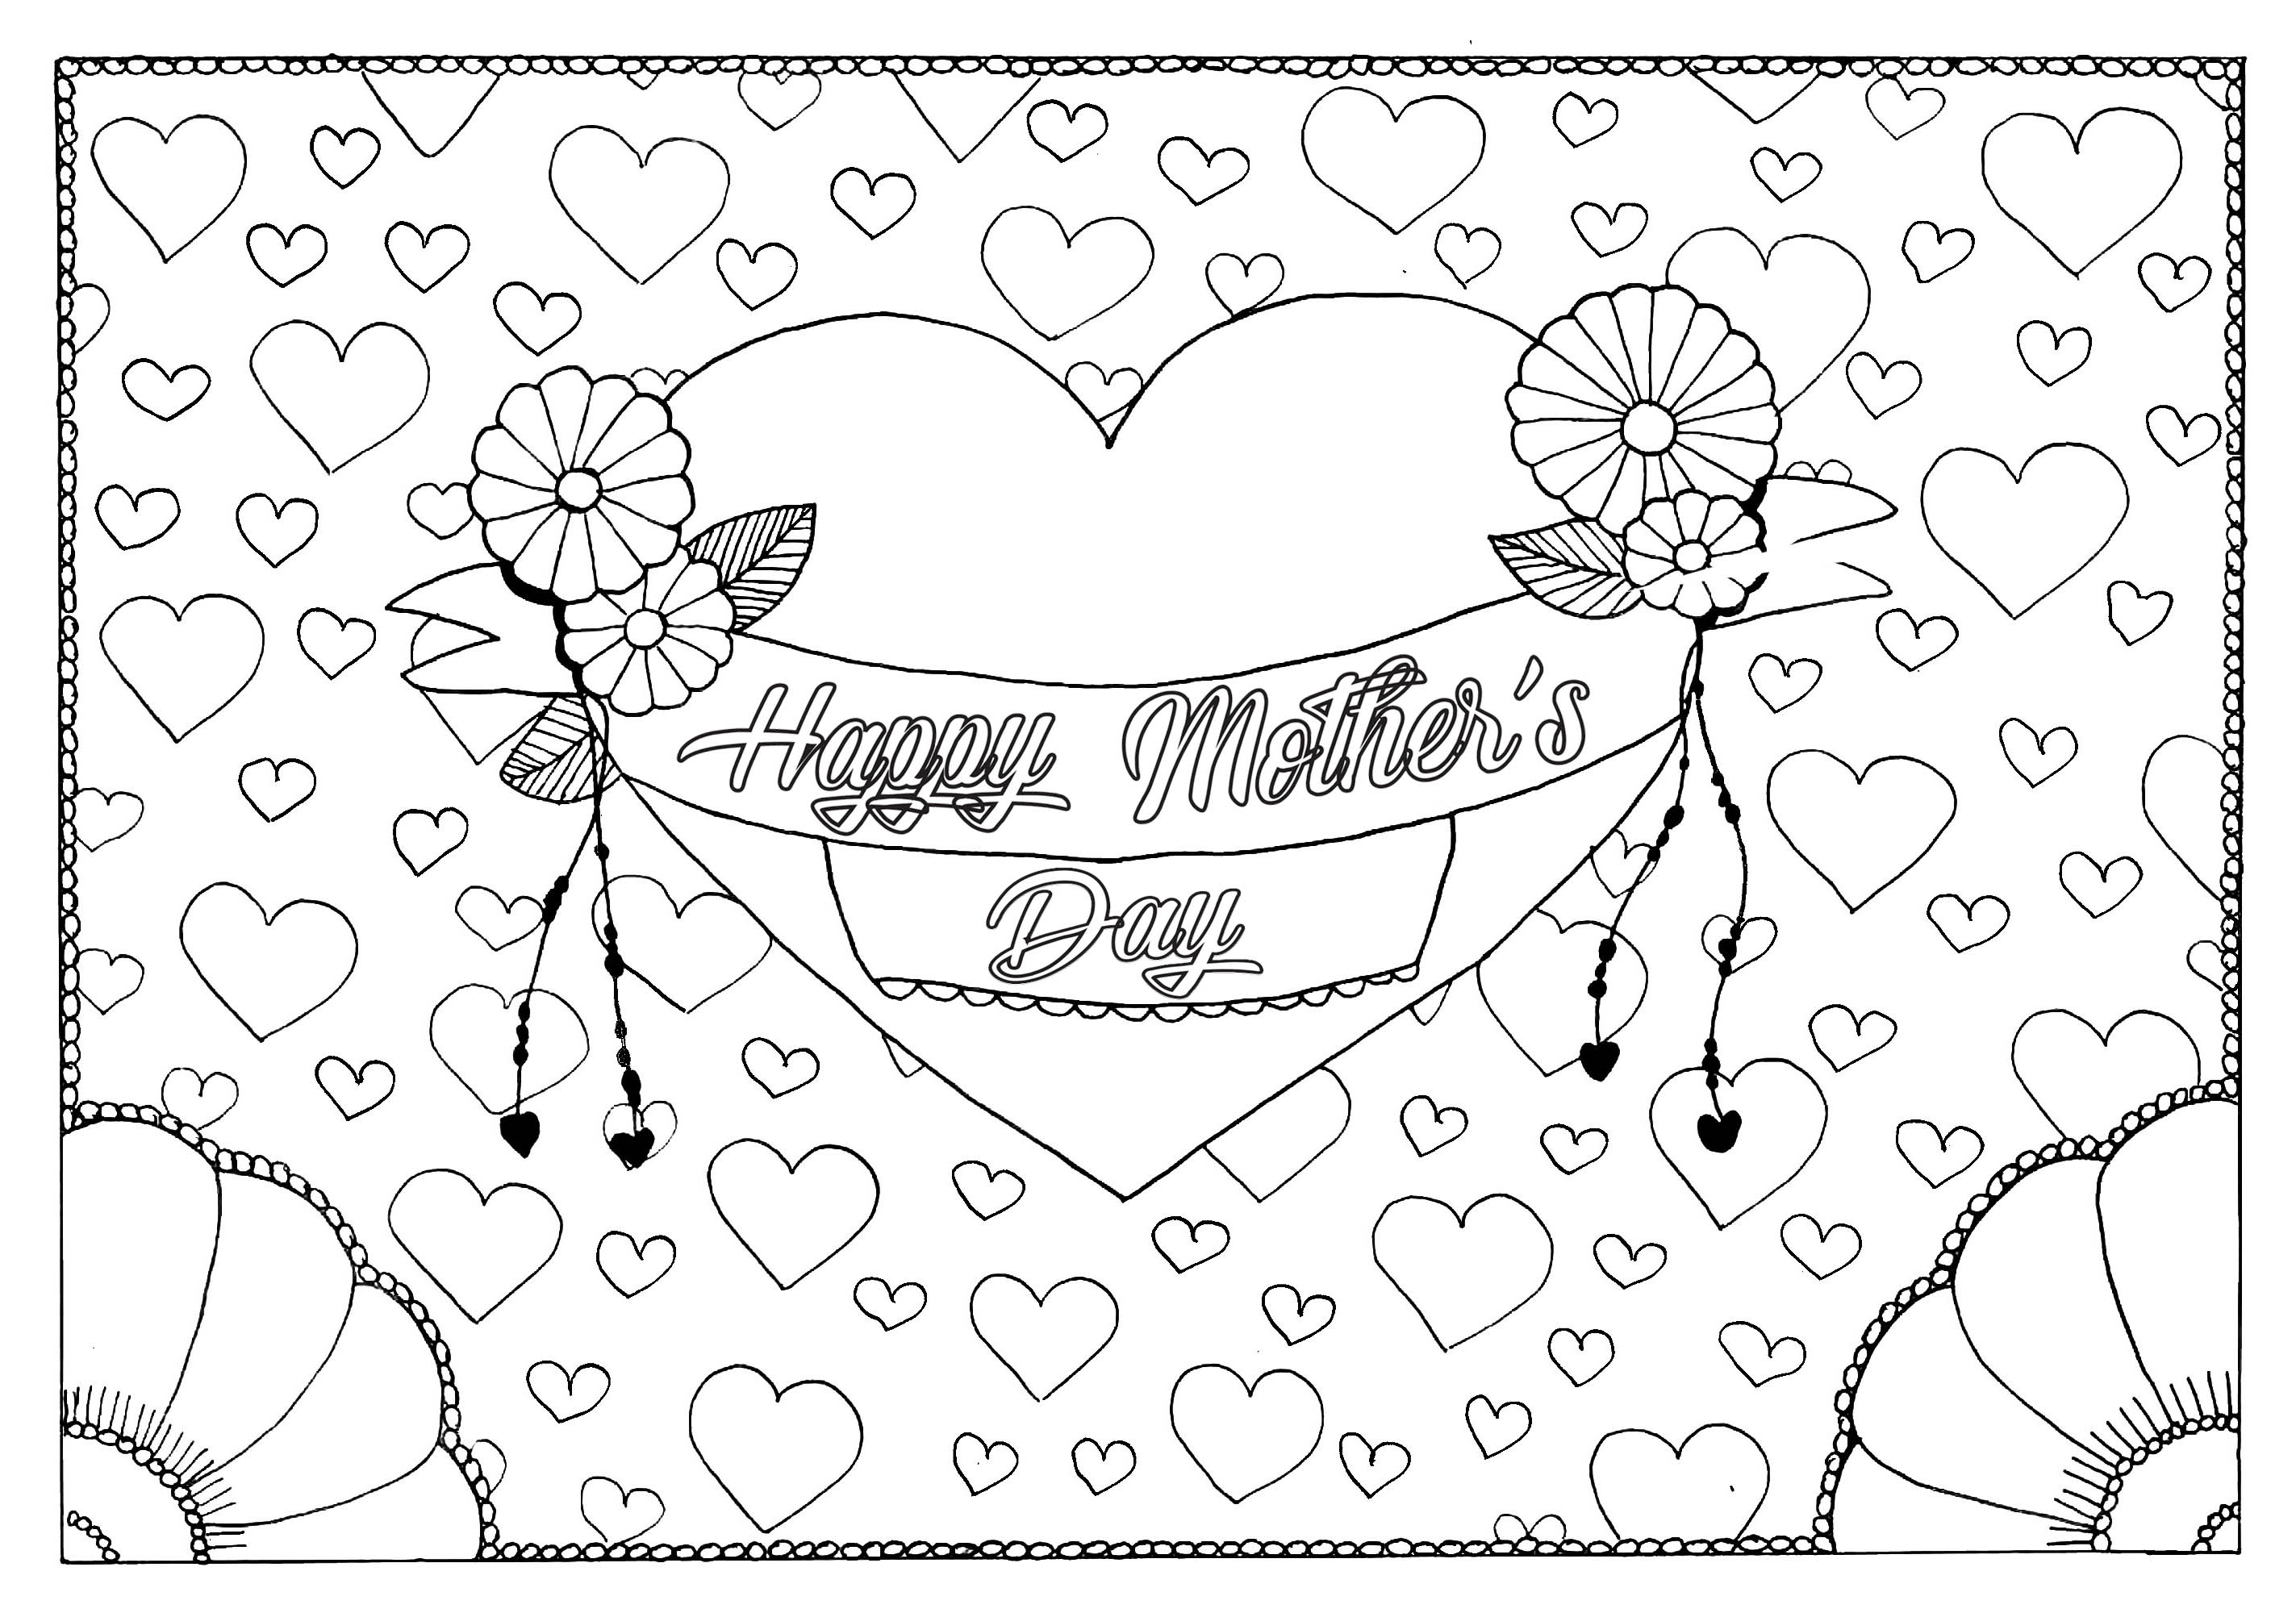 a coloring page for the mothers day - Coloring Pages Mothers Day